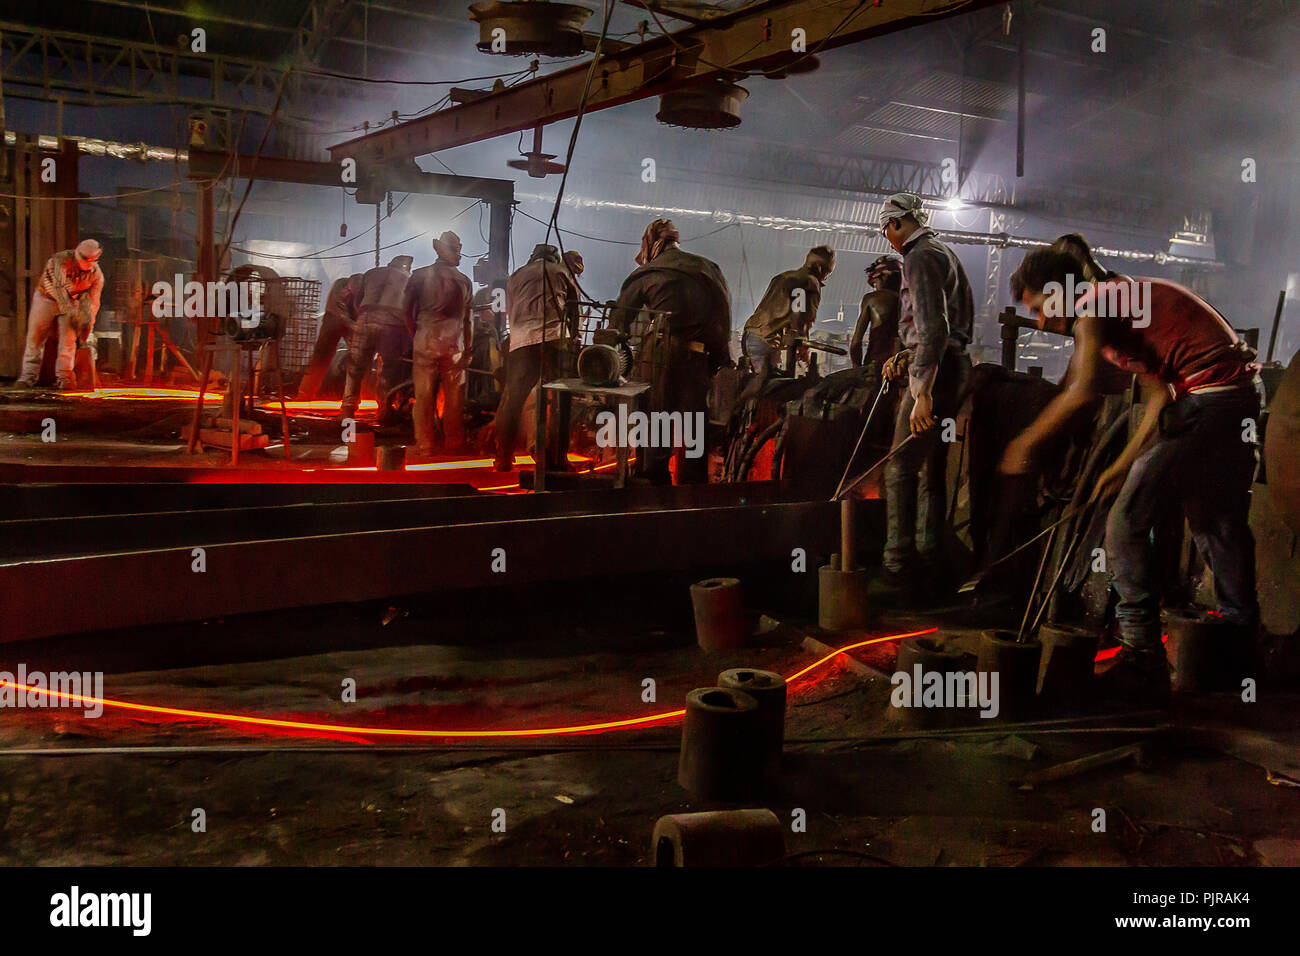 Indian industrial workers working hard in tough situation in foundry. Stock Photo